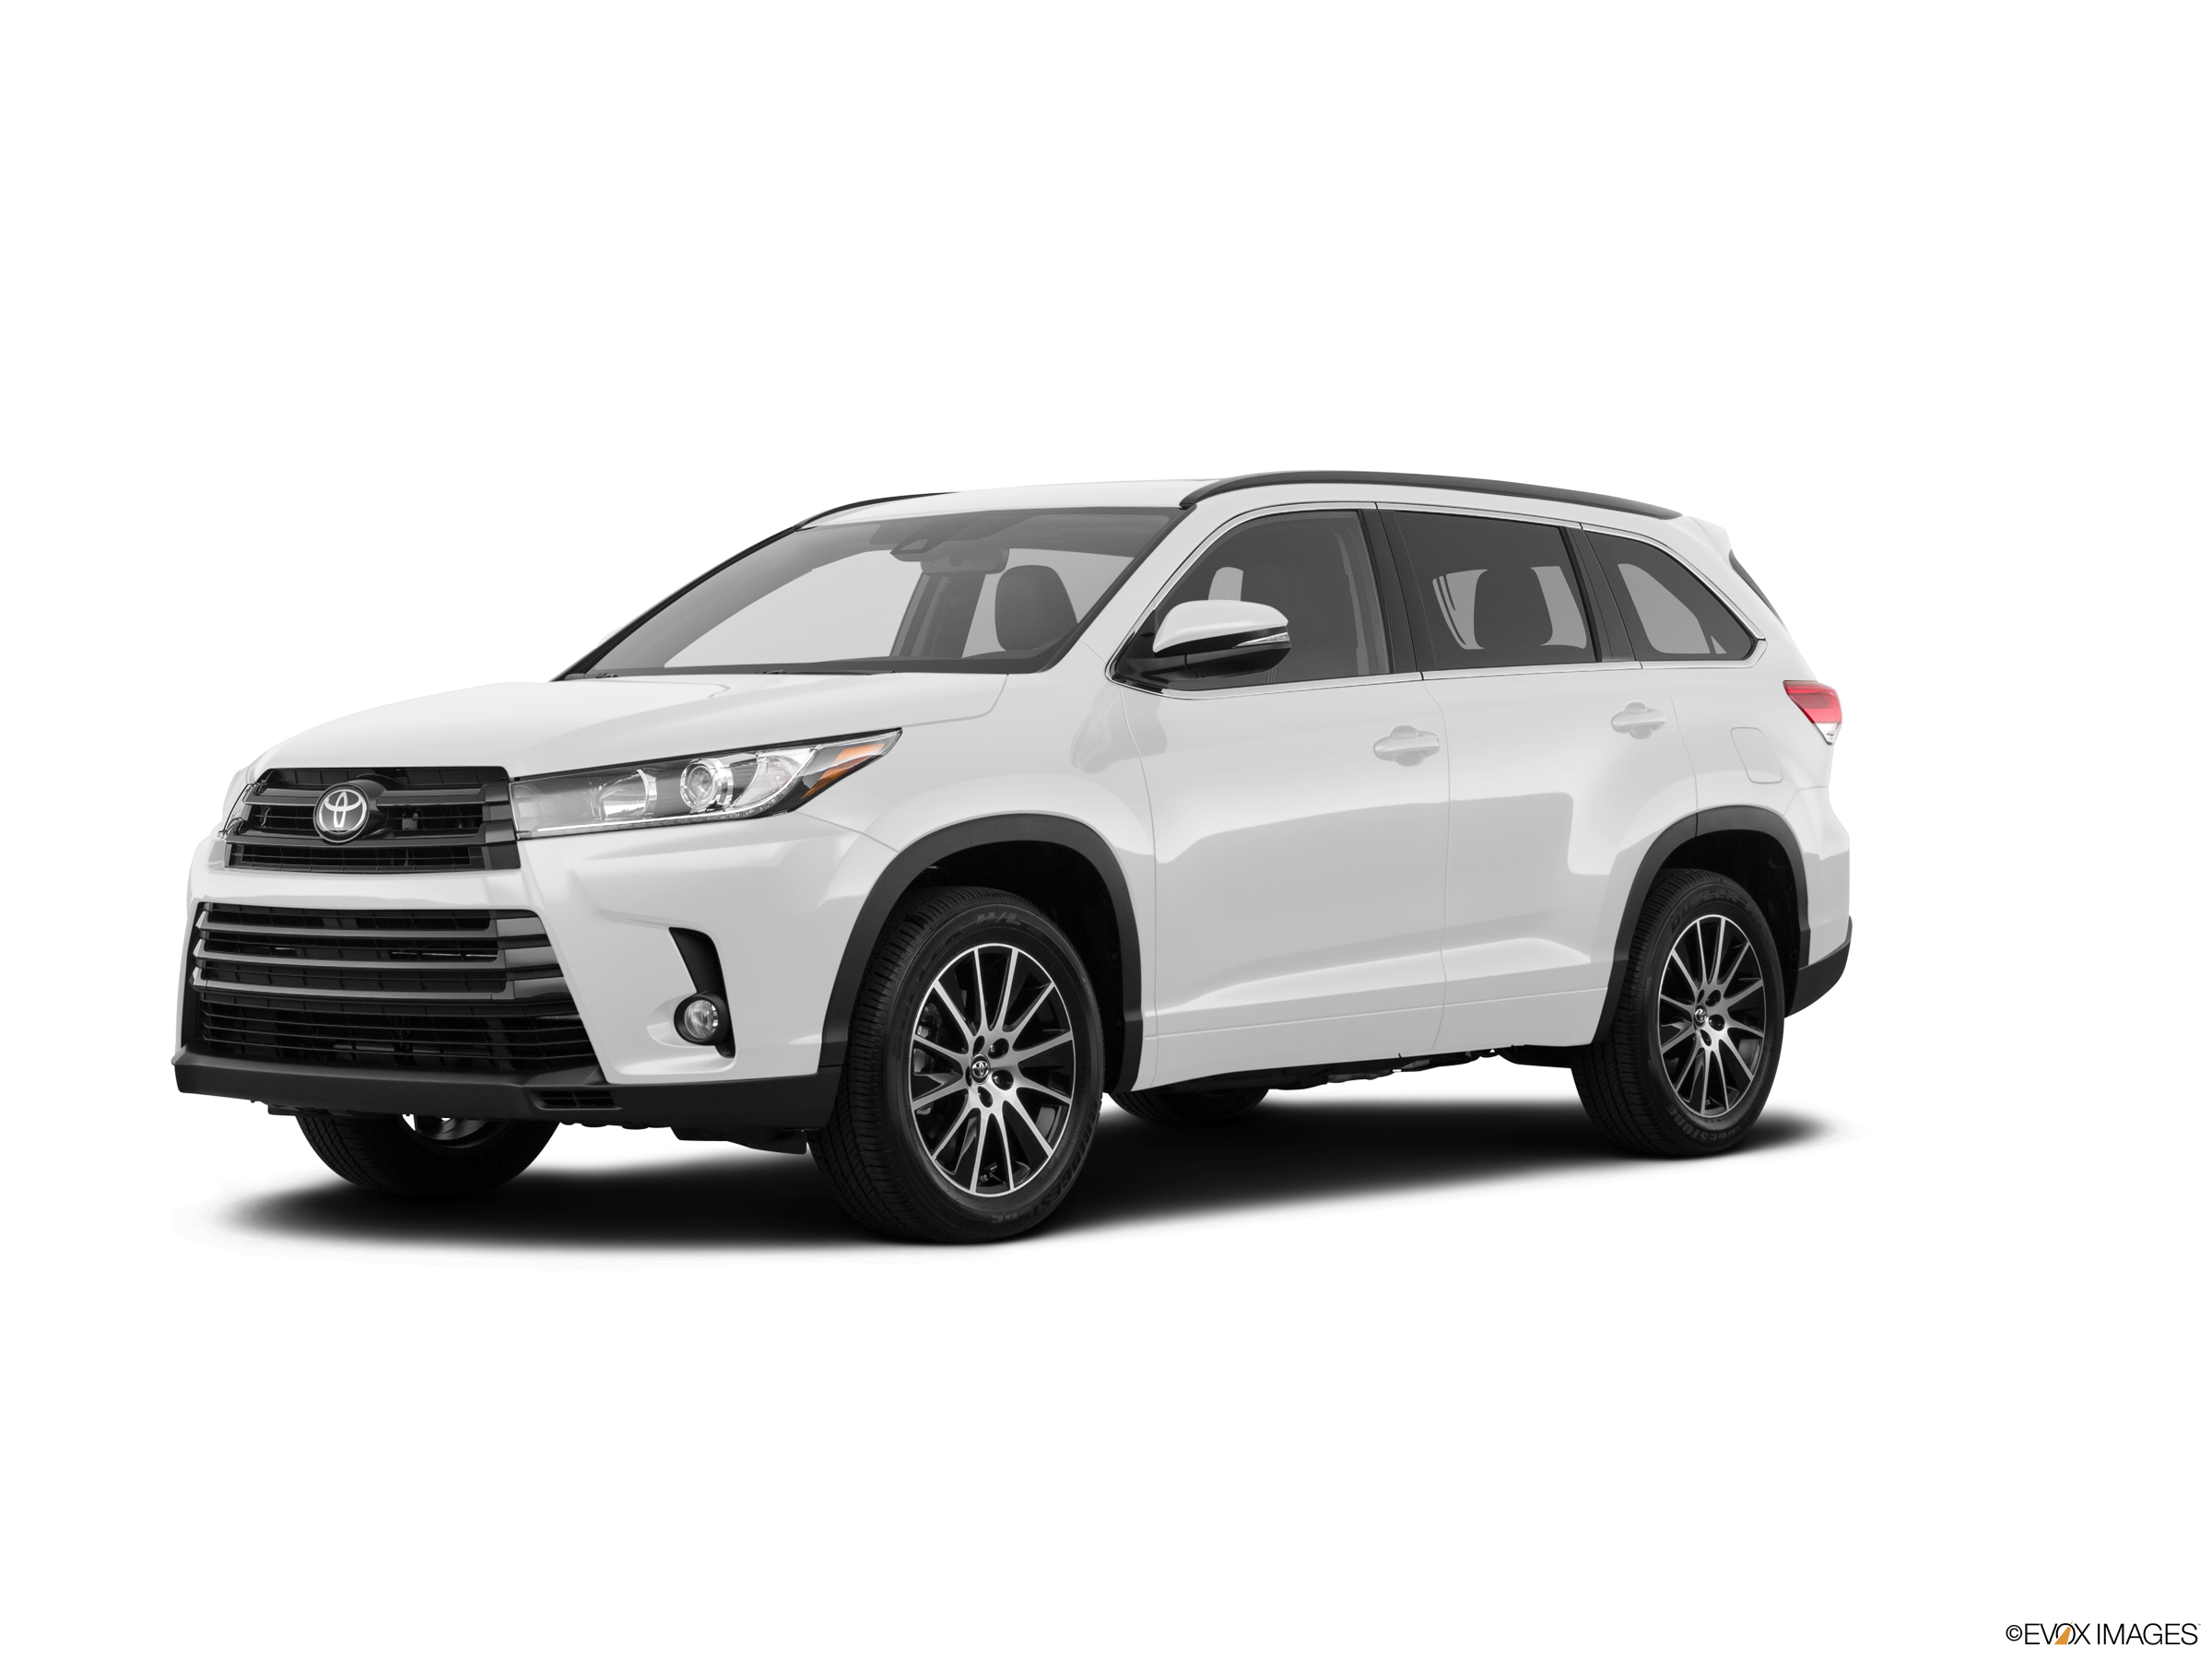 25 Best-Selling SUVs of 2018 - Toyota Highlander